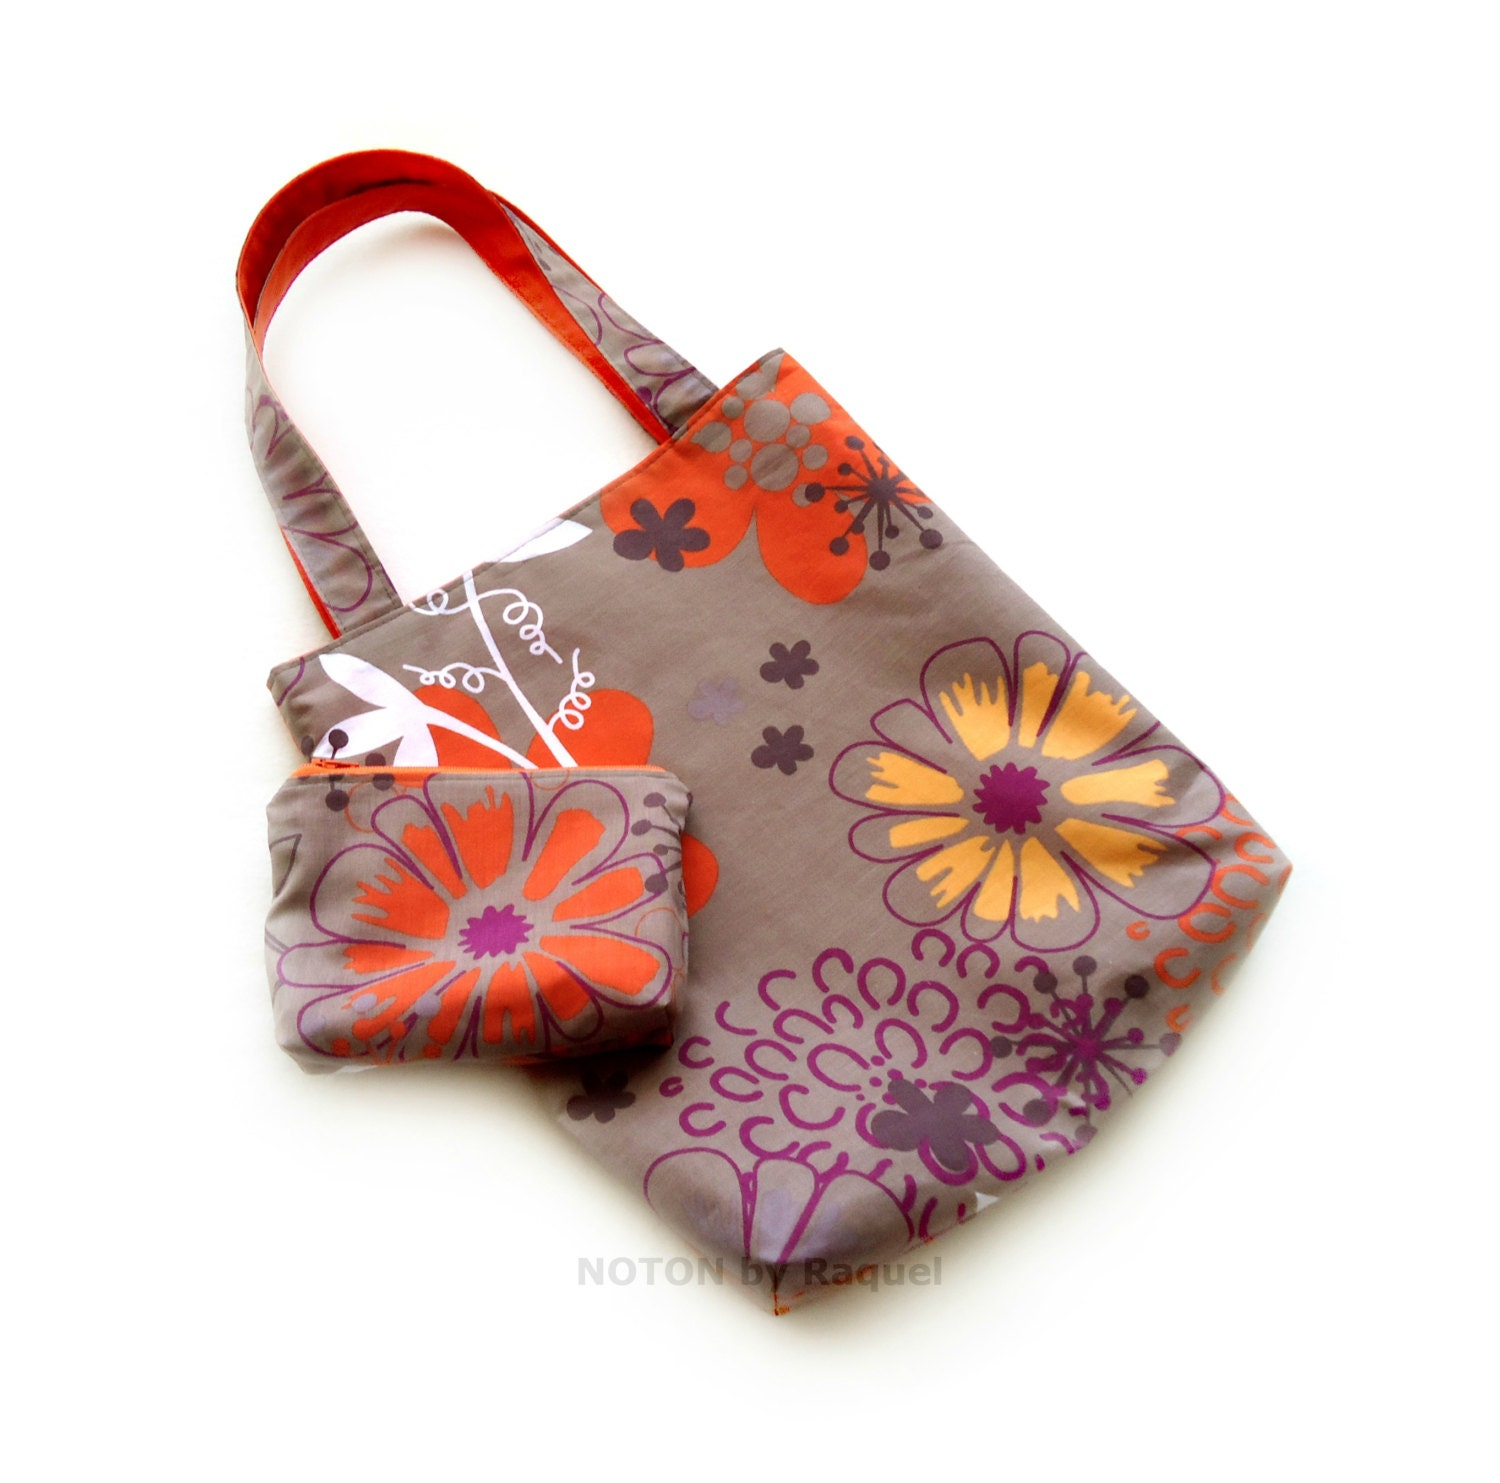 Flowery Brown and Orange Tote Bag and Small Purse Set, womens summer tote bag, shoulder bag and purse, beach purse, gifts for her - NOTONbyRaquel